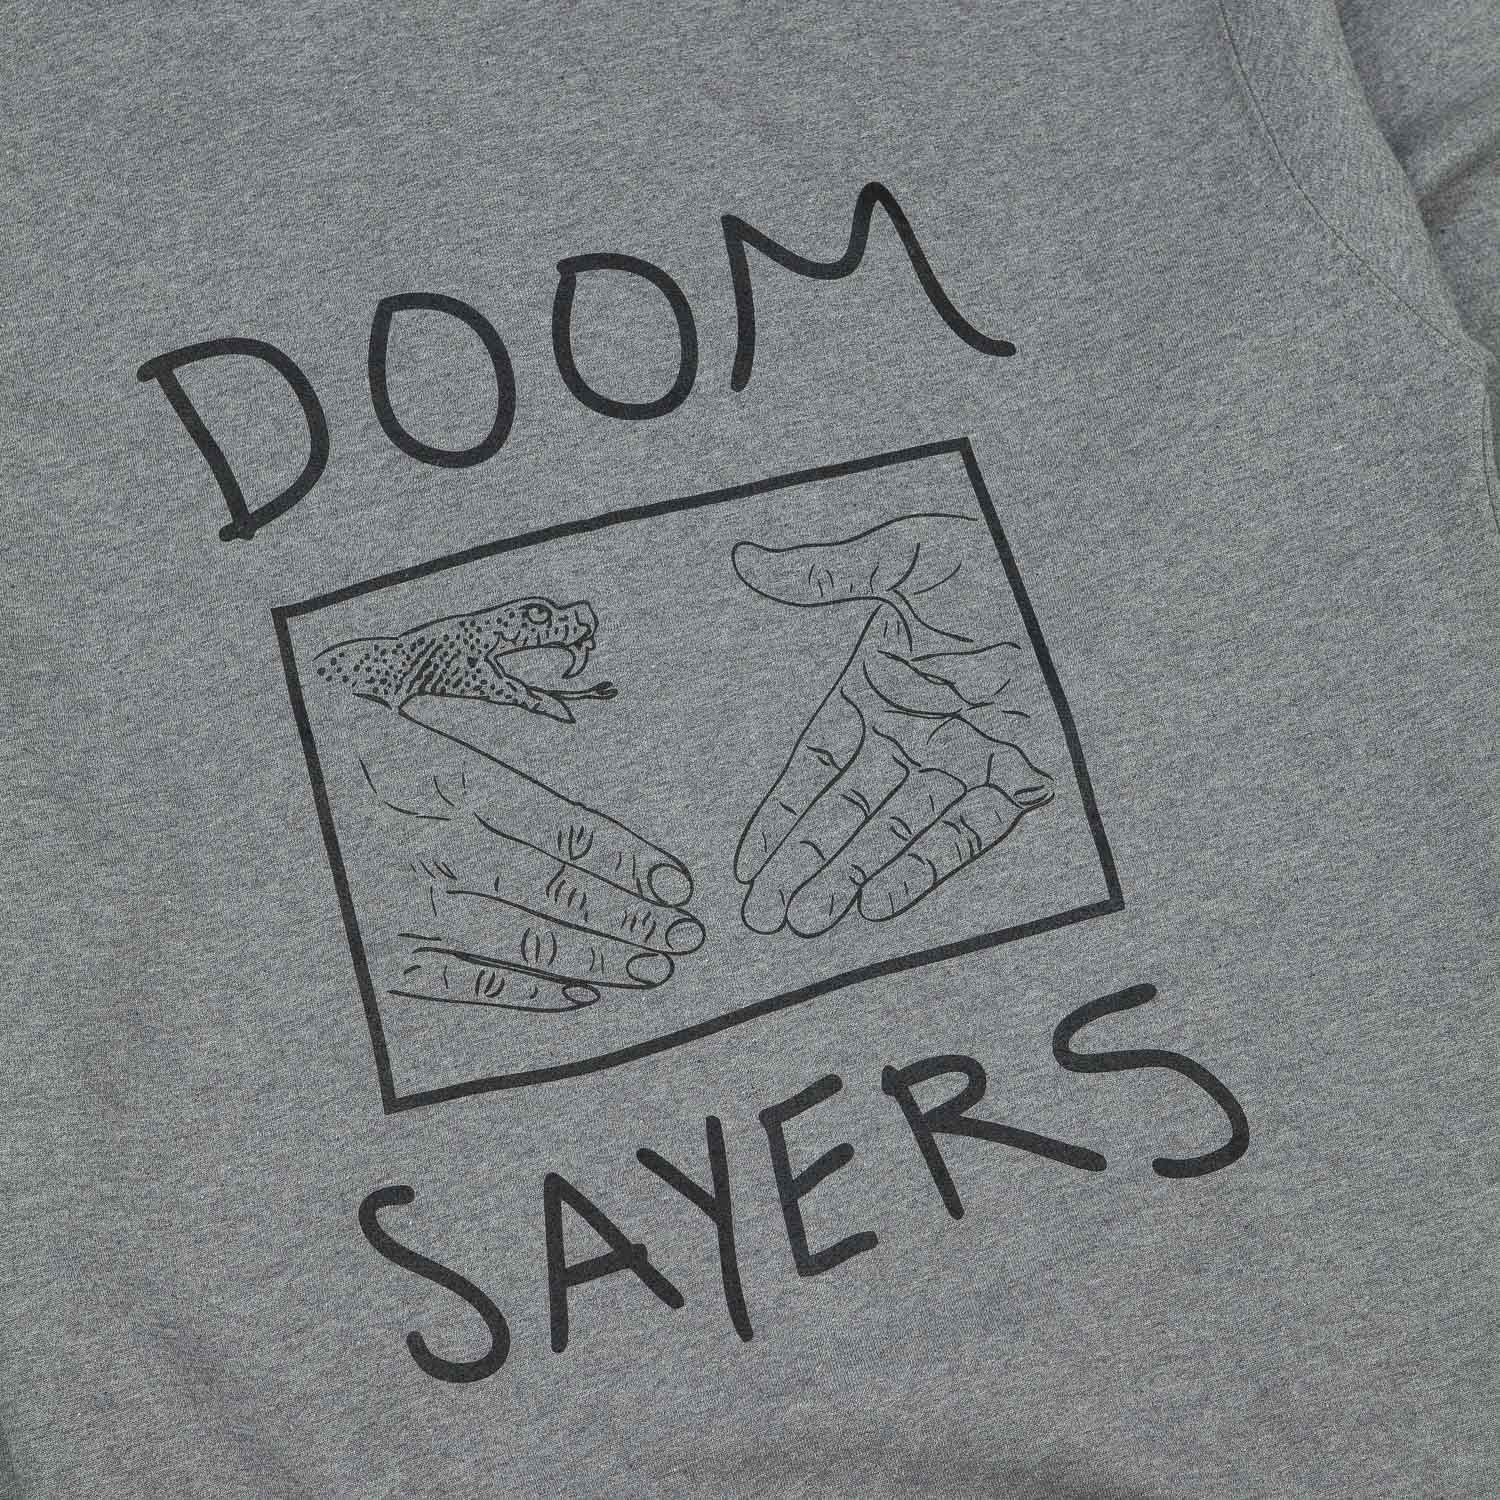 Doomsayers Snake Shake Hooded Sweatshirt - Grey